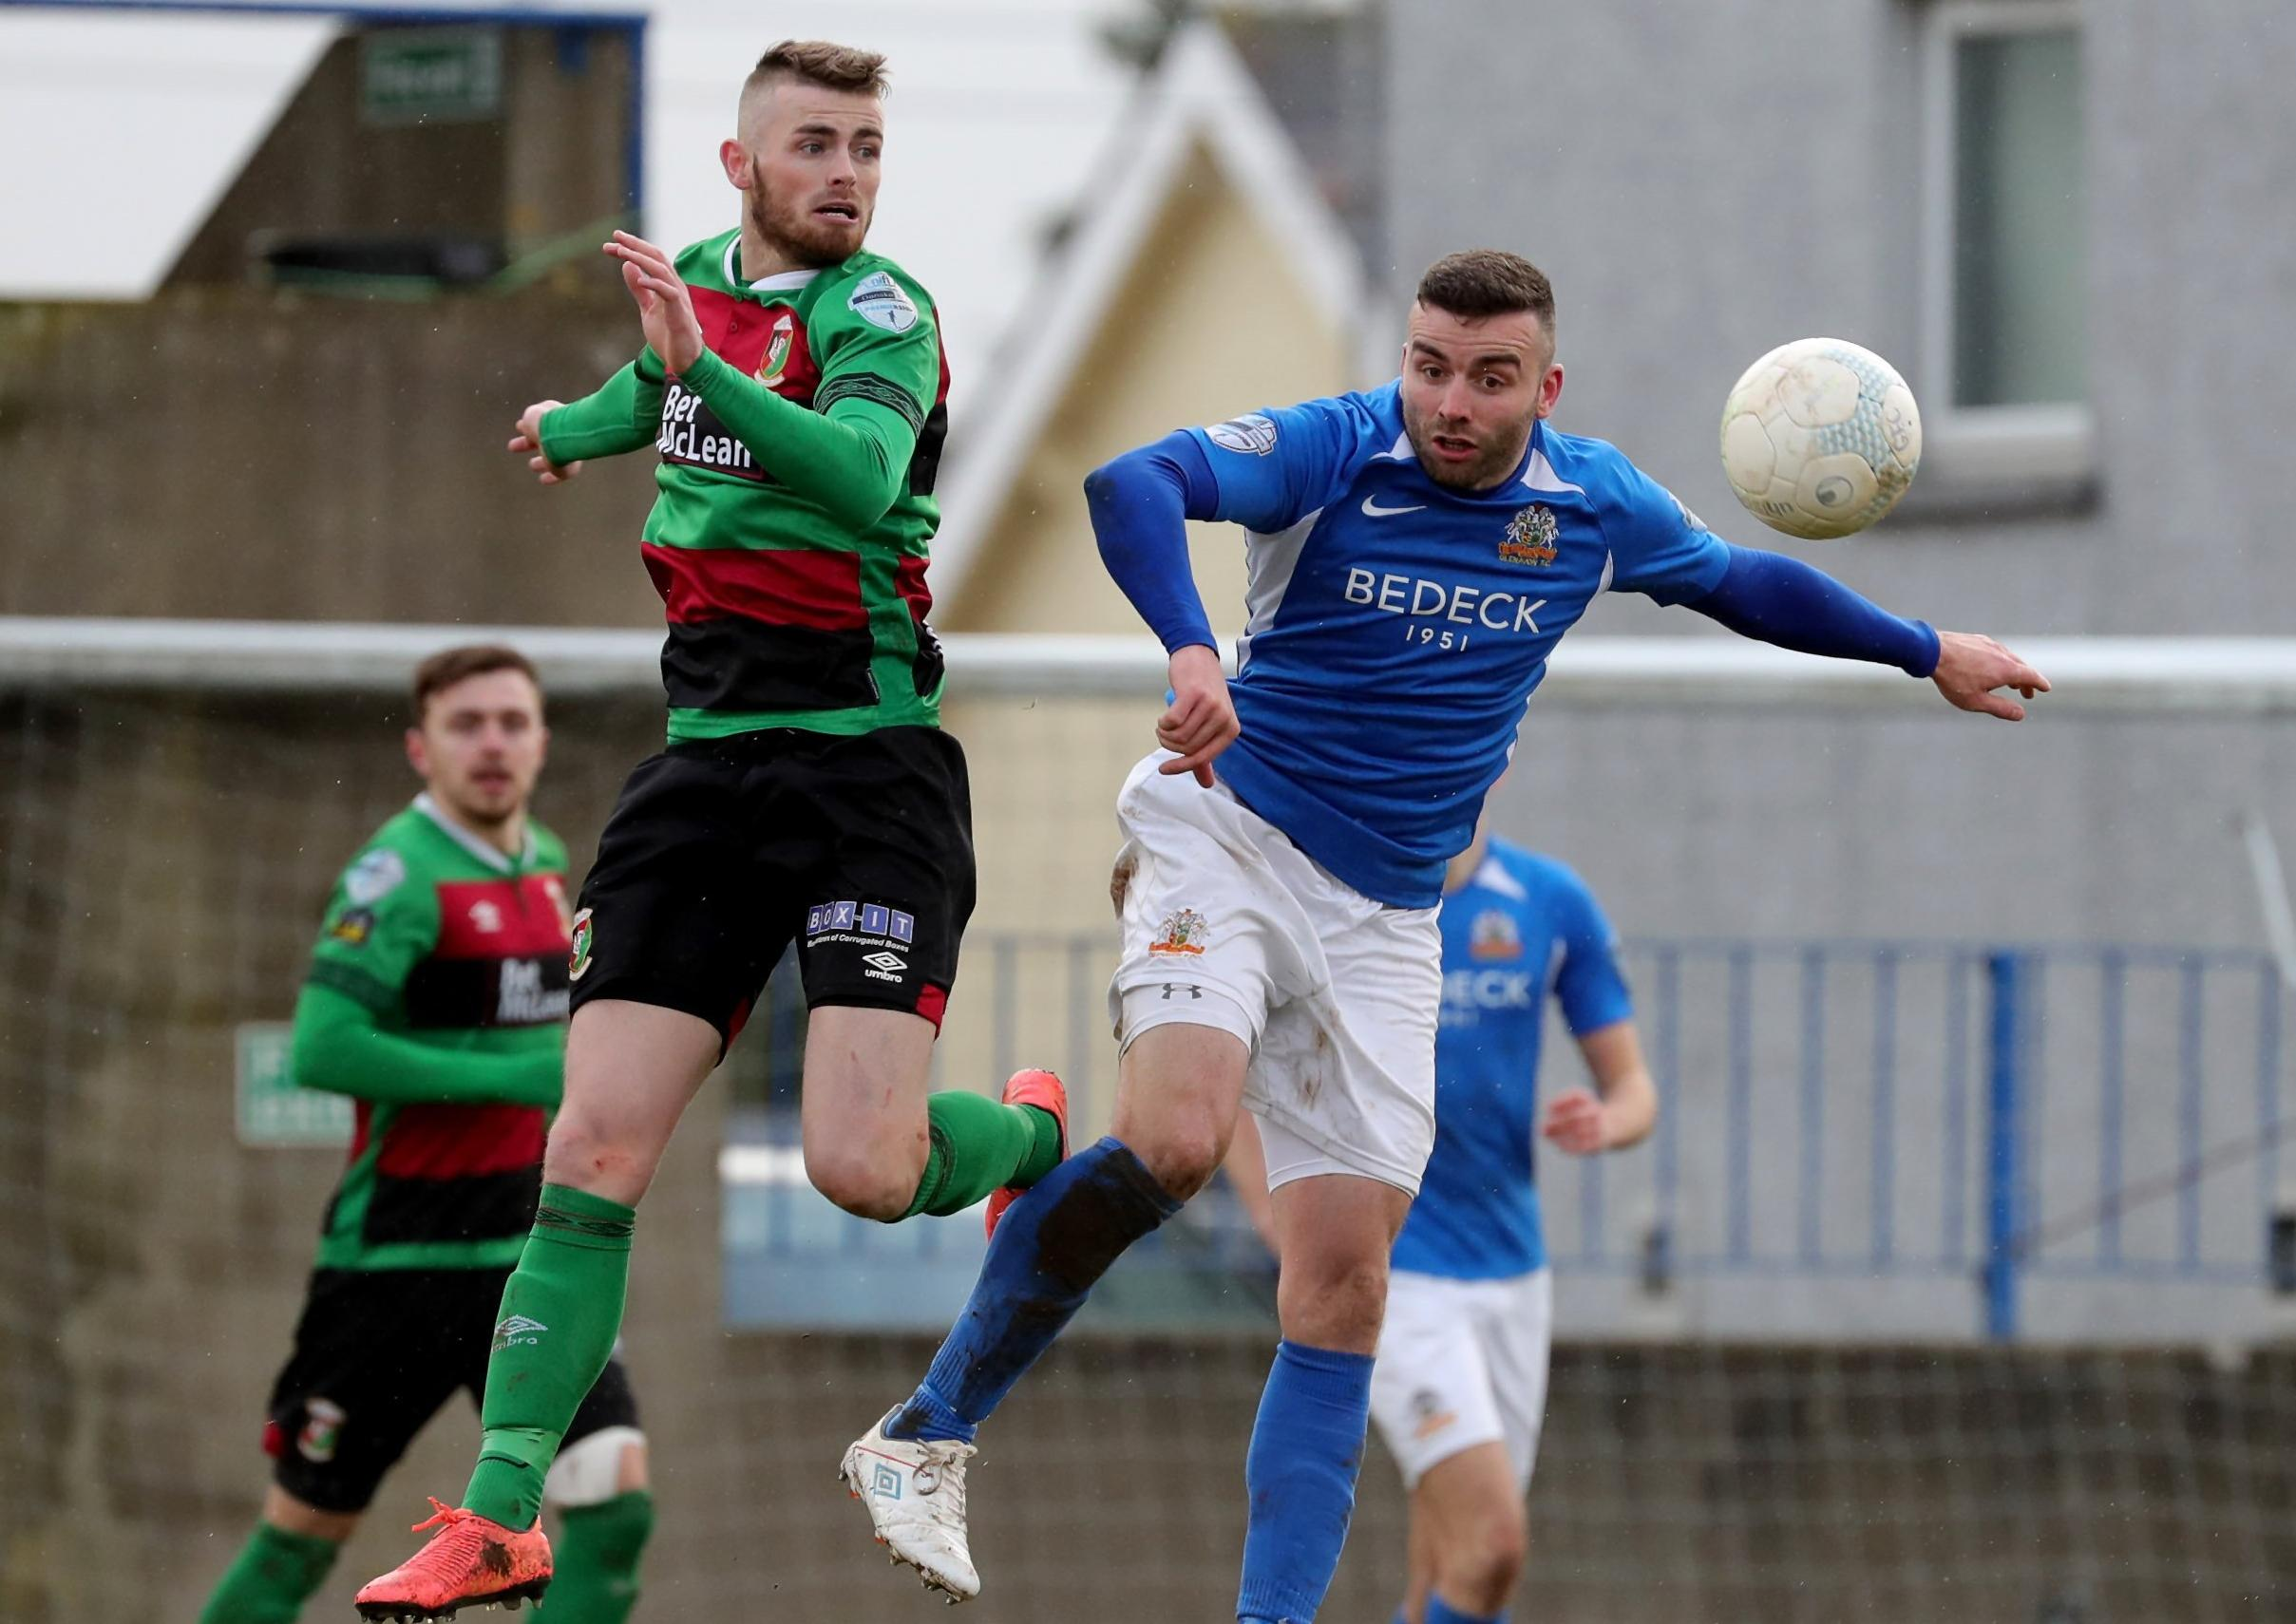 Glentoran's Paul Millar accepts 'massive' Linfield gap but vows to keep on fighting